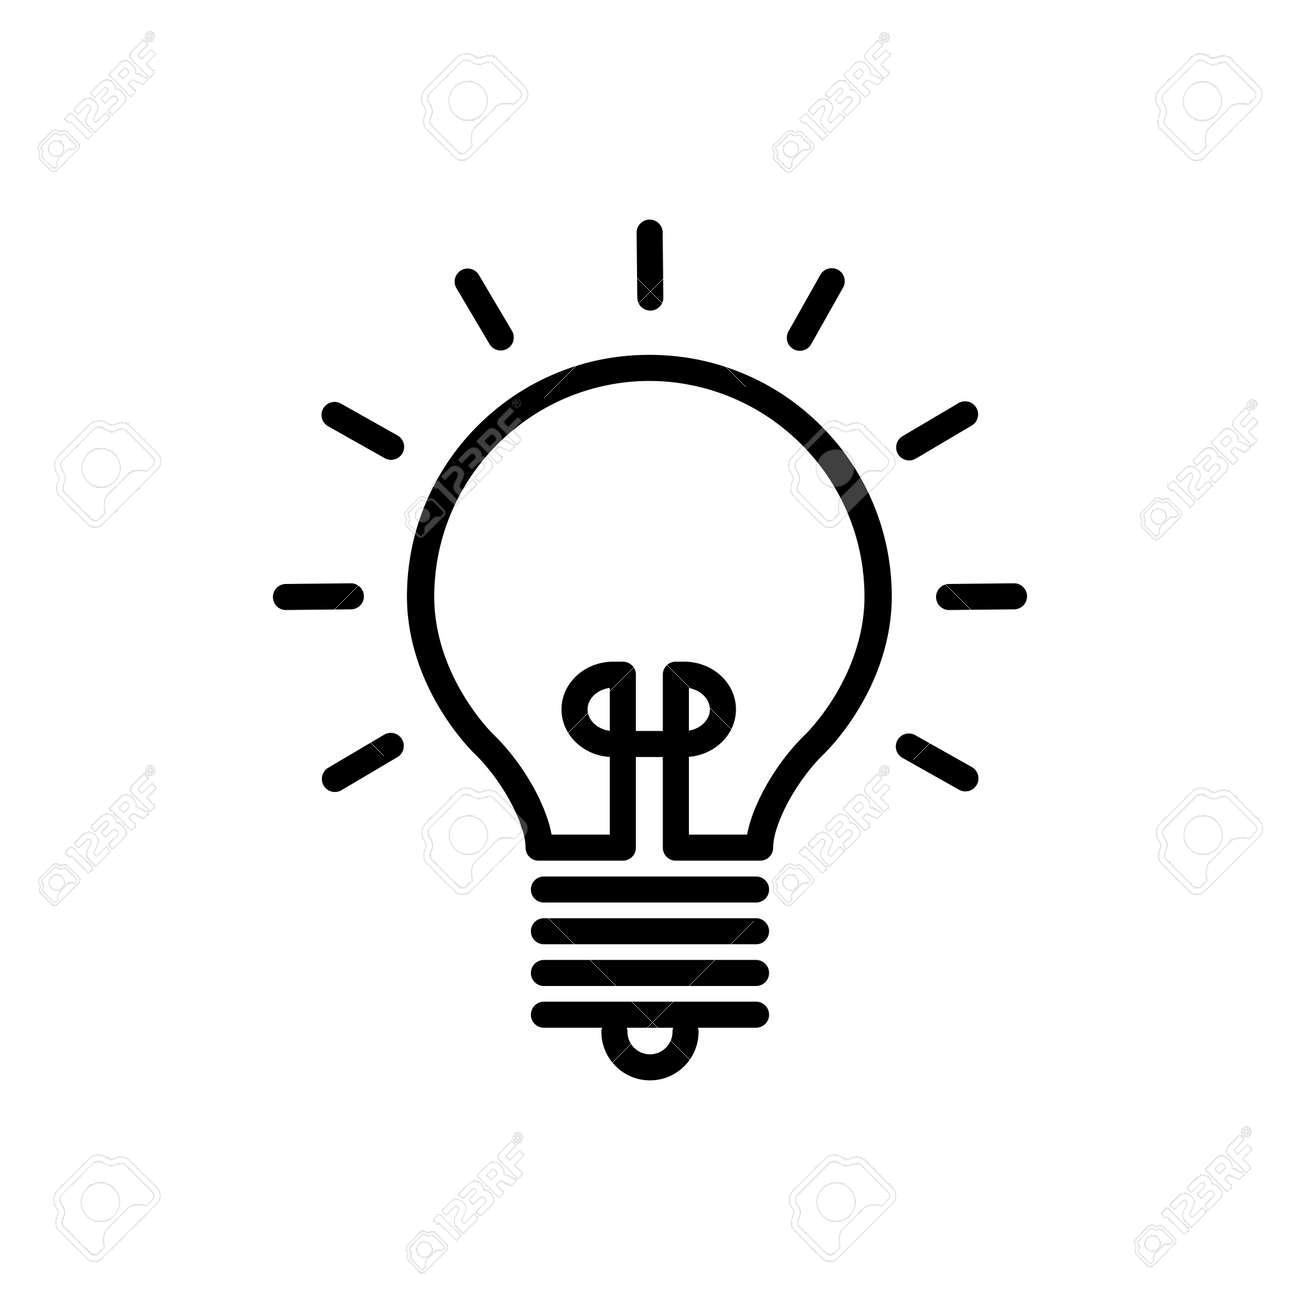 Light Bulb Icon Design Logo Vector Template And Illustration Sign And Symbol - 146602625